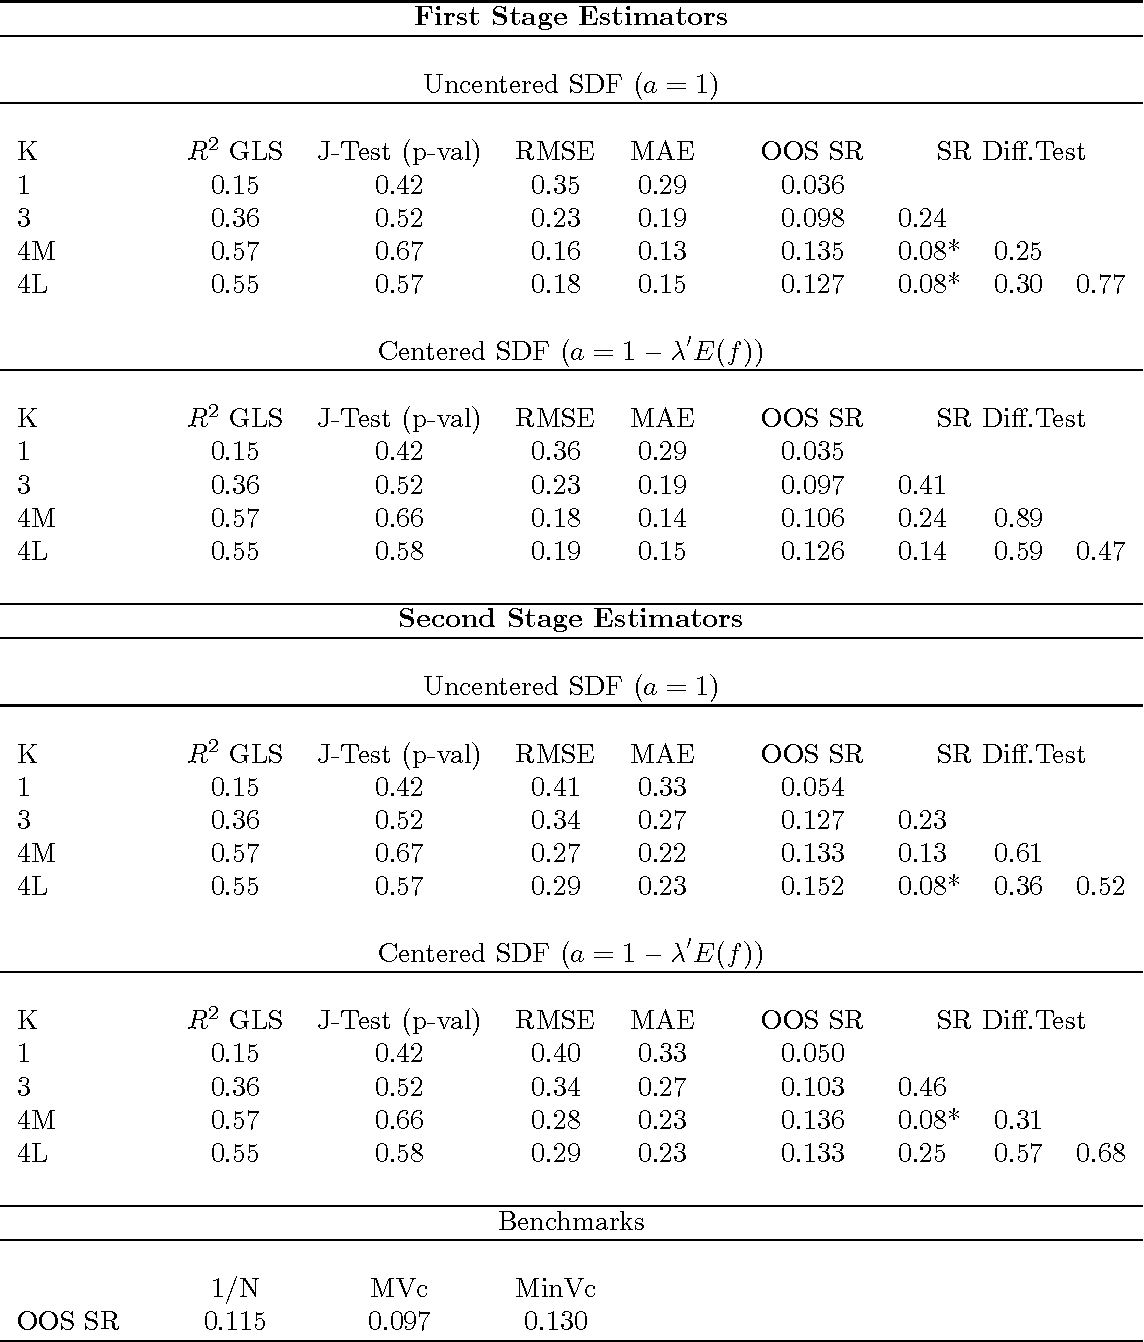 Table 14: Linear Asset Pricing Model Estimation and MV Portfolio Performance